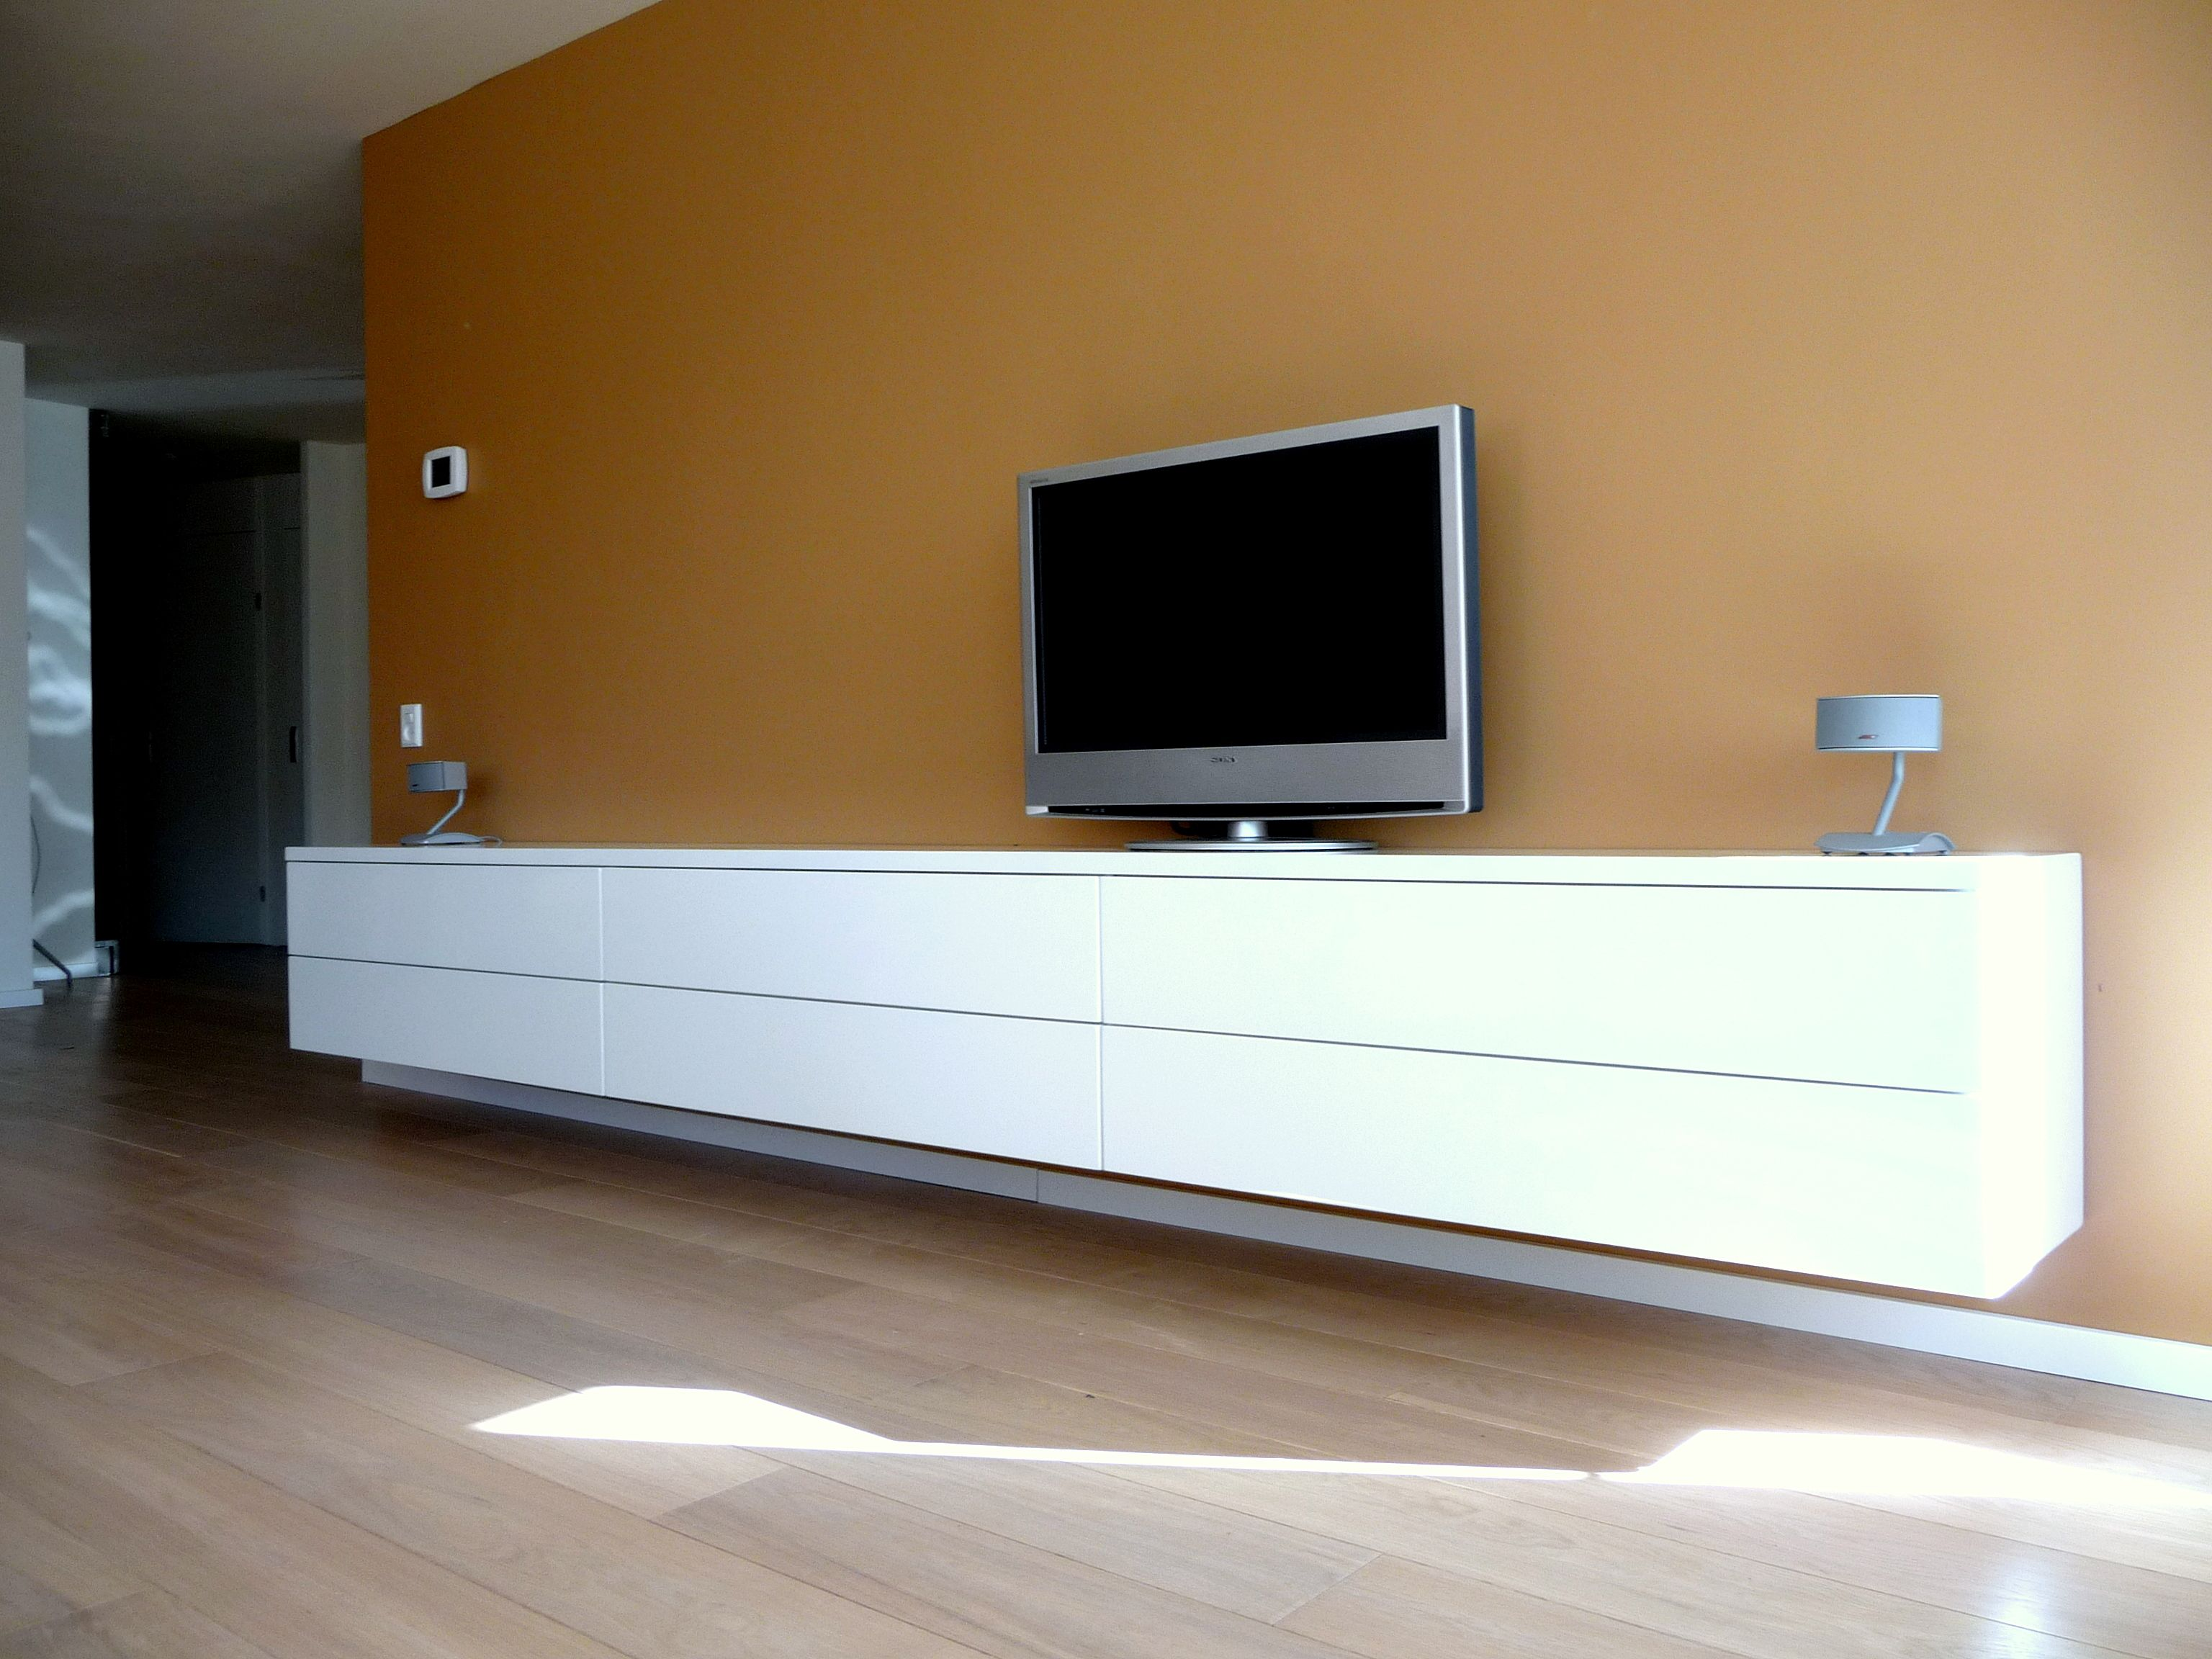 Zwevend hoogglans design dressoir tv meubel foto uit de for Tv meubel design